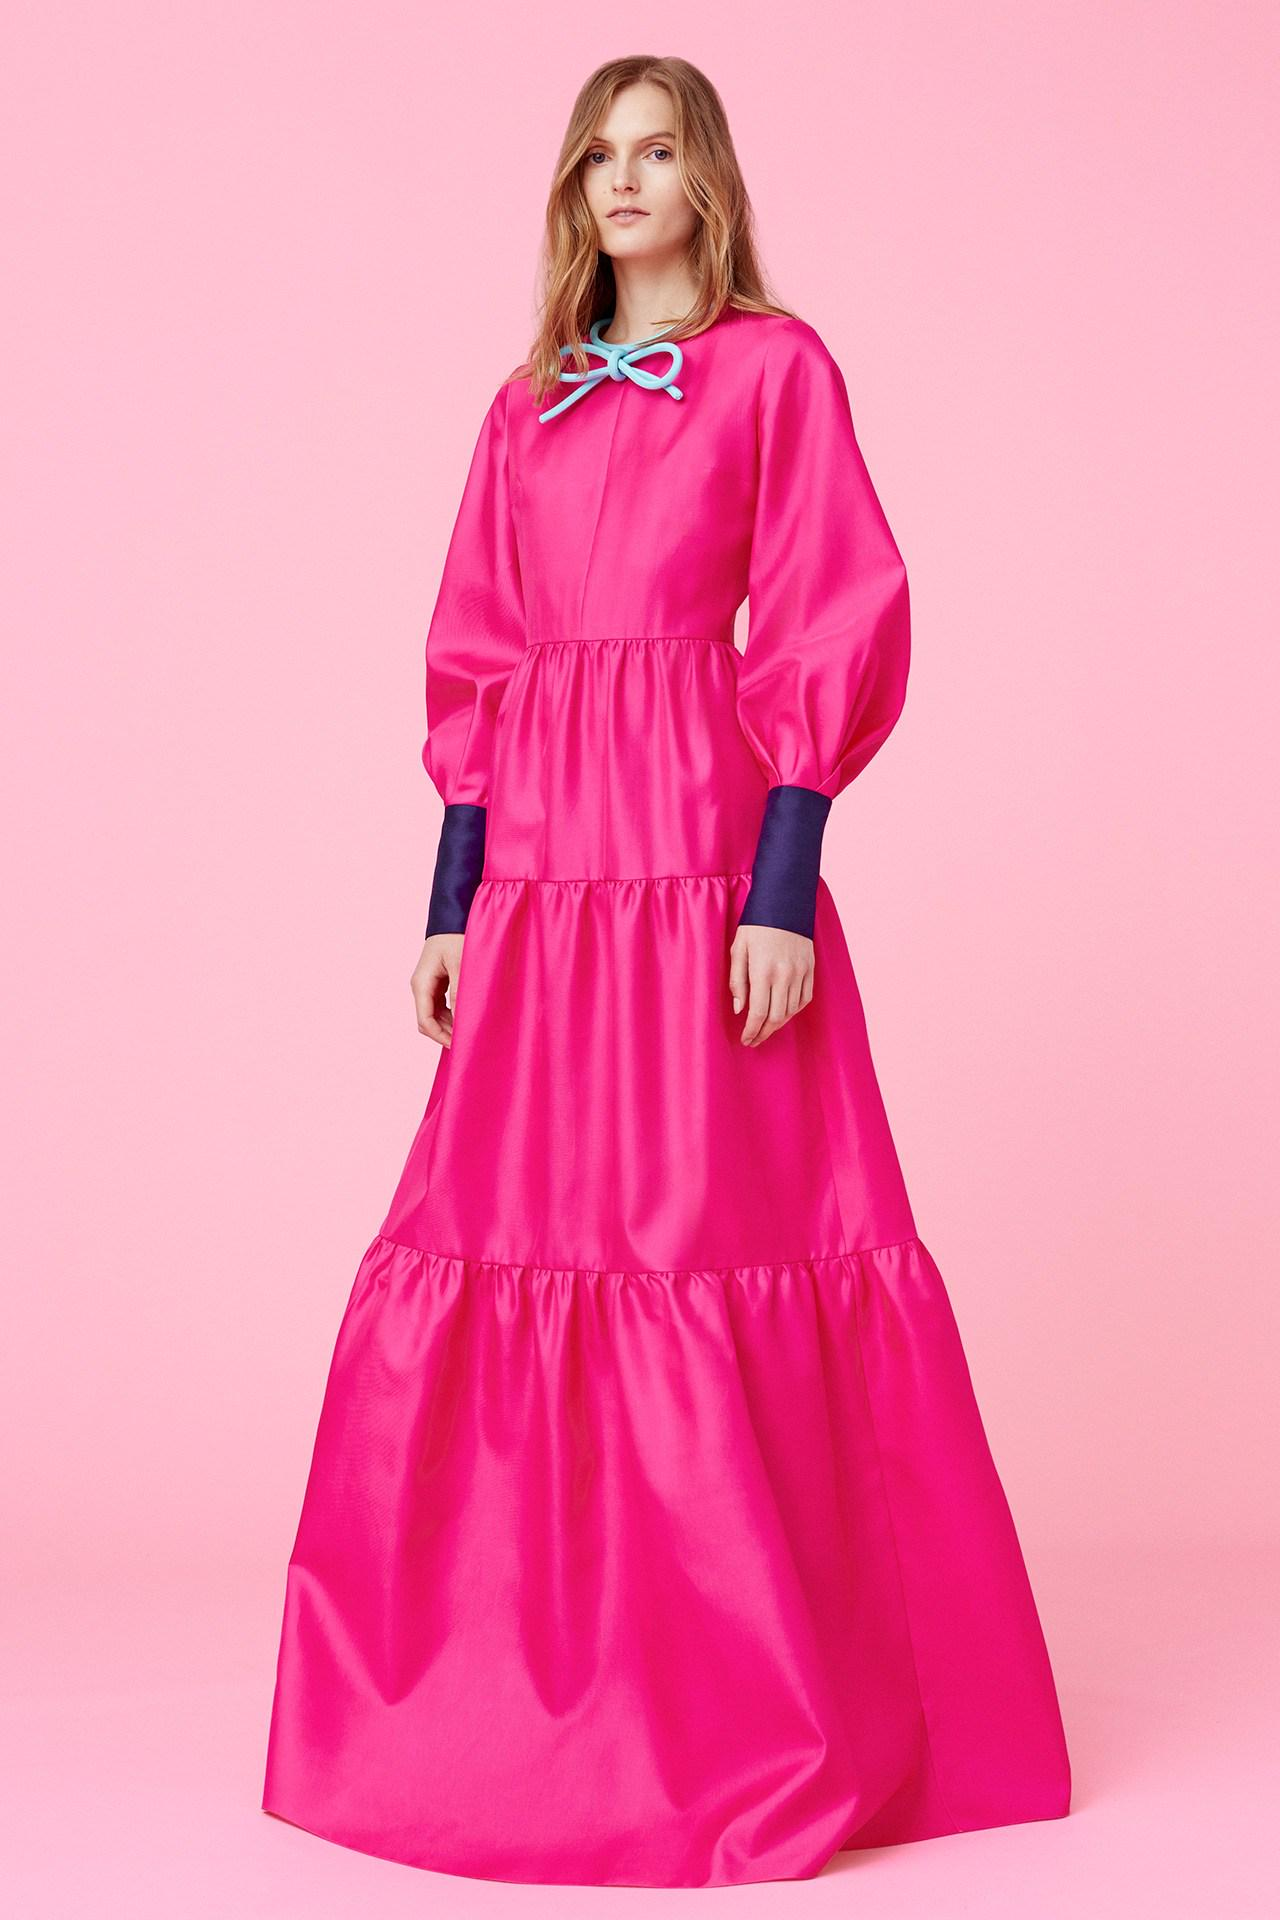 How you can get your hands on one of @RoksandaIlincic's anniversary pieces - http://t.co/UFfWs2225t http://t.co/DPc1i4B81d